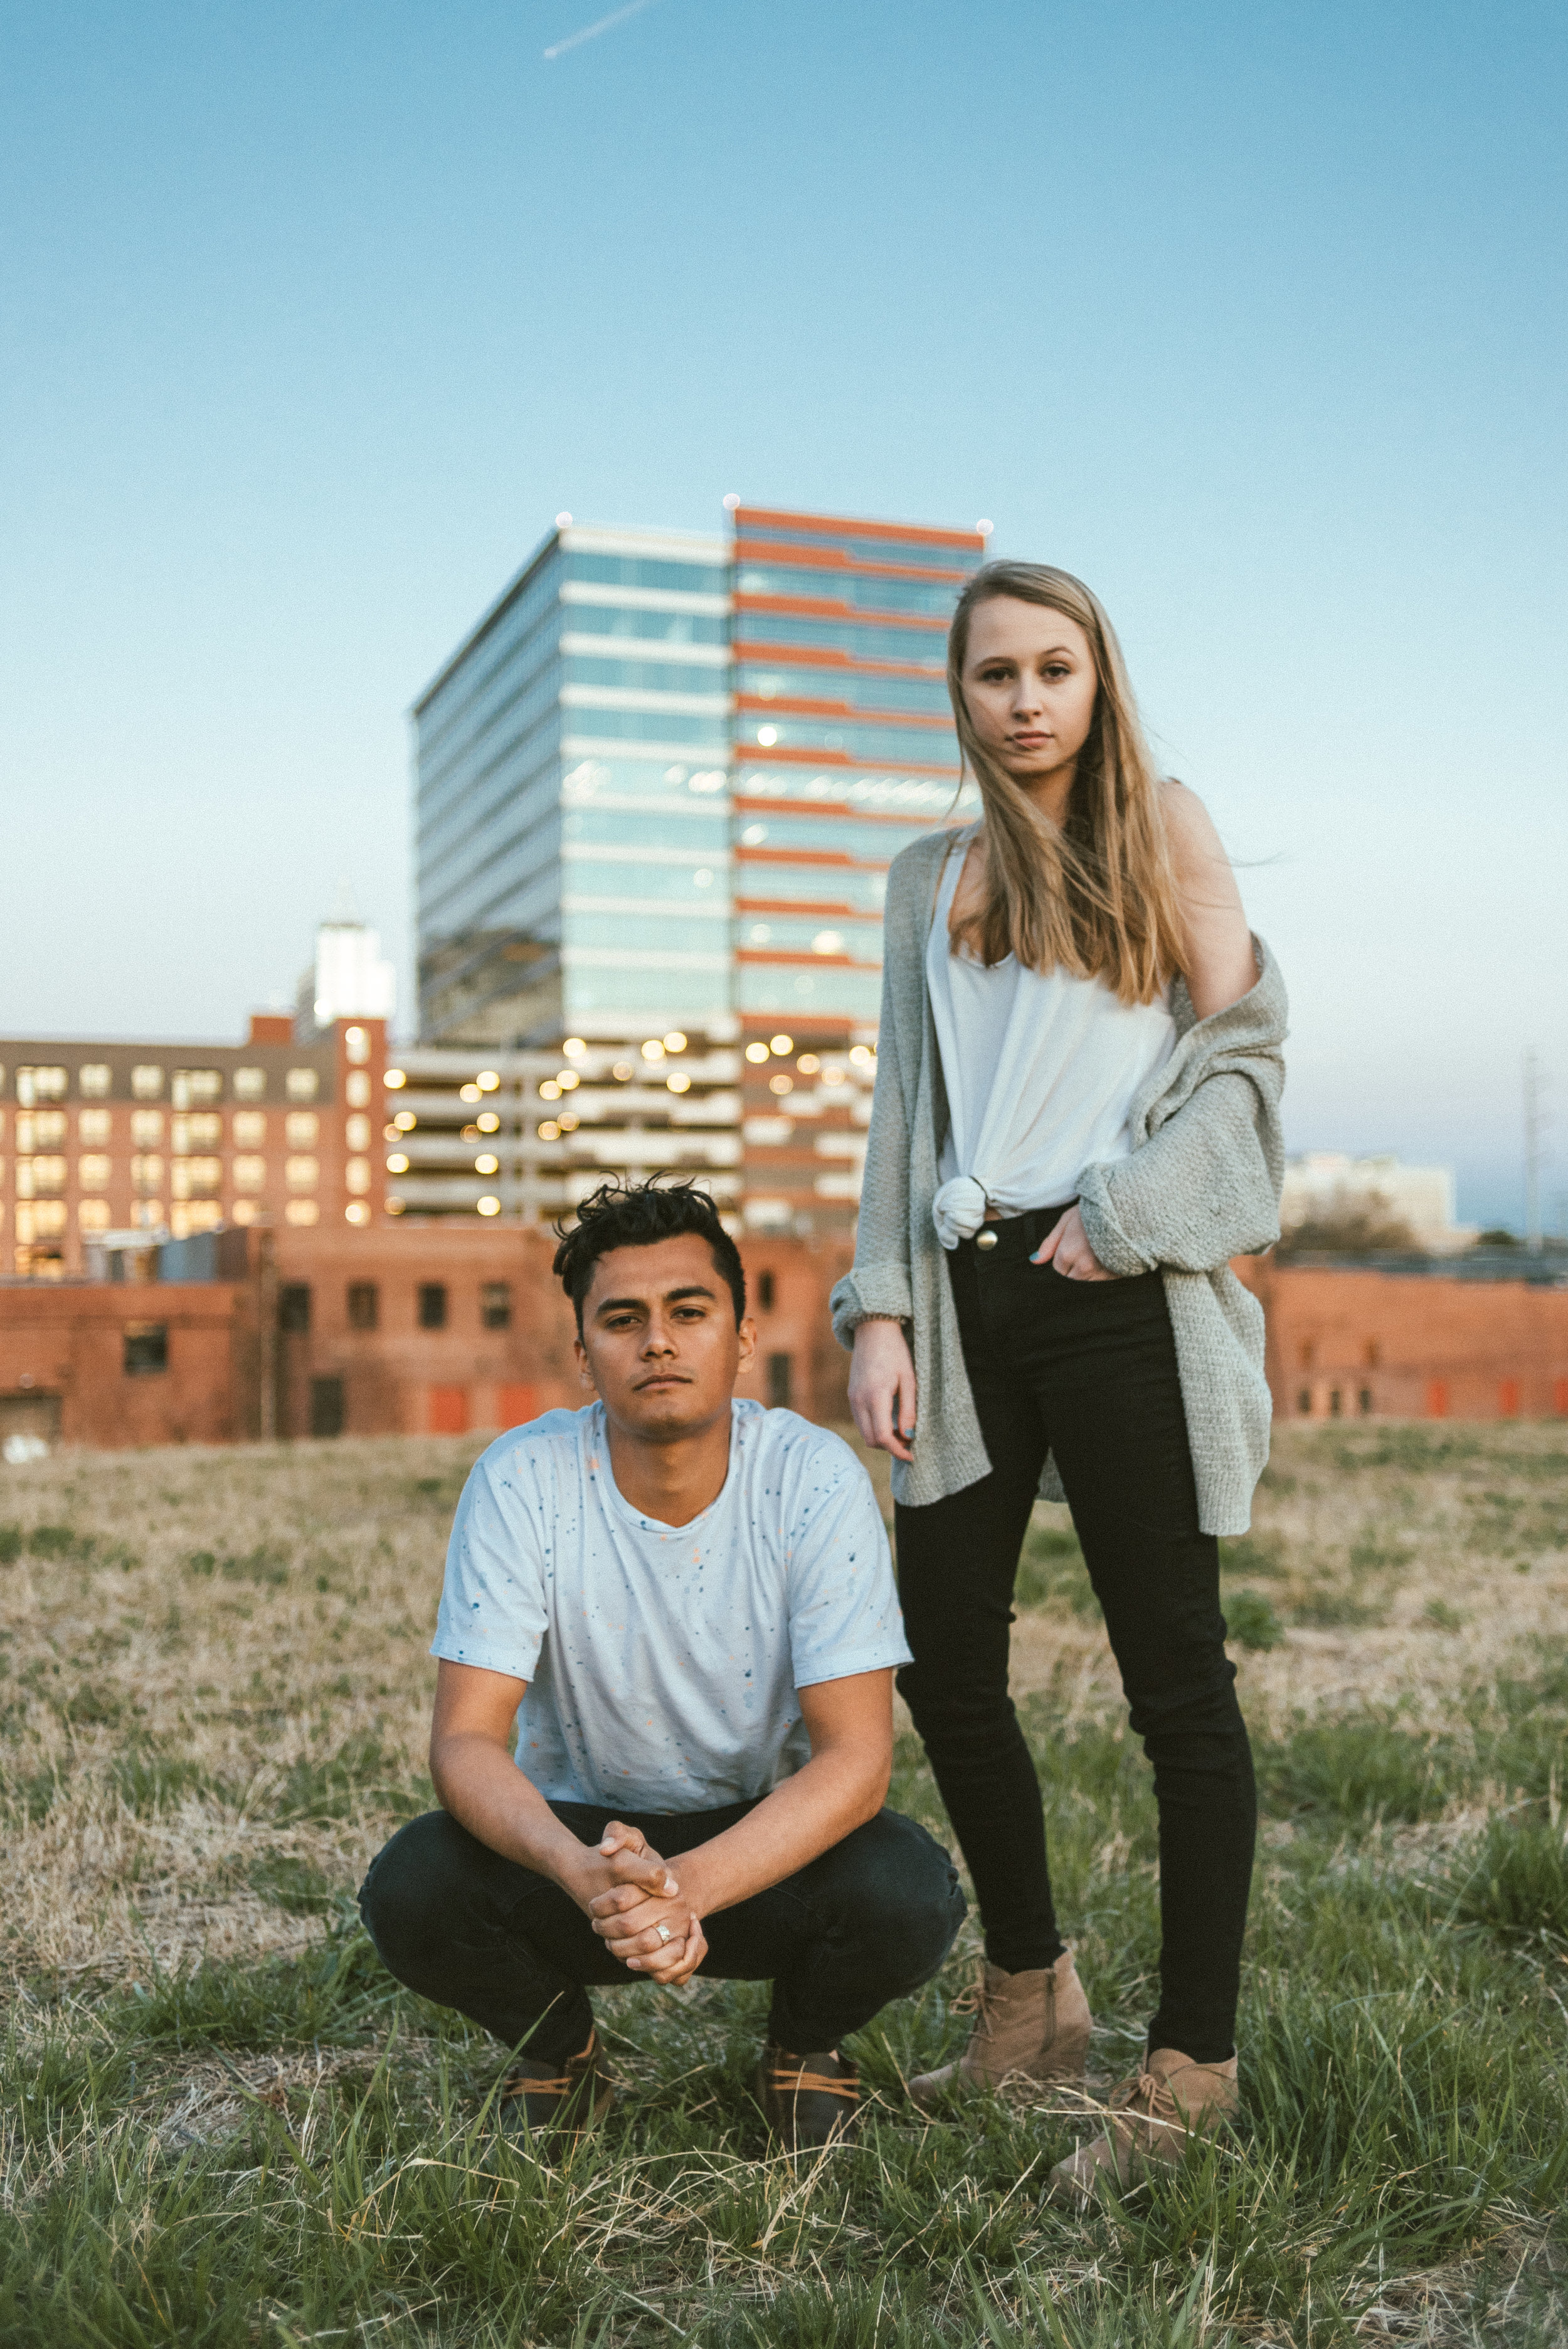 rose gold - Rose Gold, the first collaboration between newcomers Au Lune and Christina Munsey, resonates with 808 drops, analog atmospheric textures and future bass inspired stabs and rhythms. Christina's dreamy vocals blends seamlessly with Au Lune's atmospheric trap style drop, rhythmic beats, and haunting melodies.